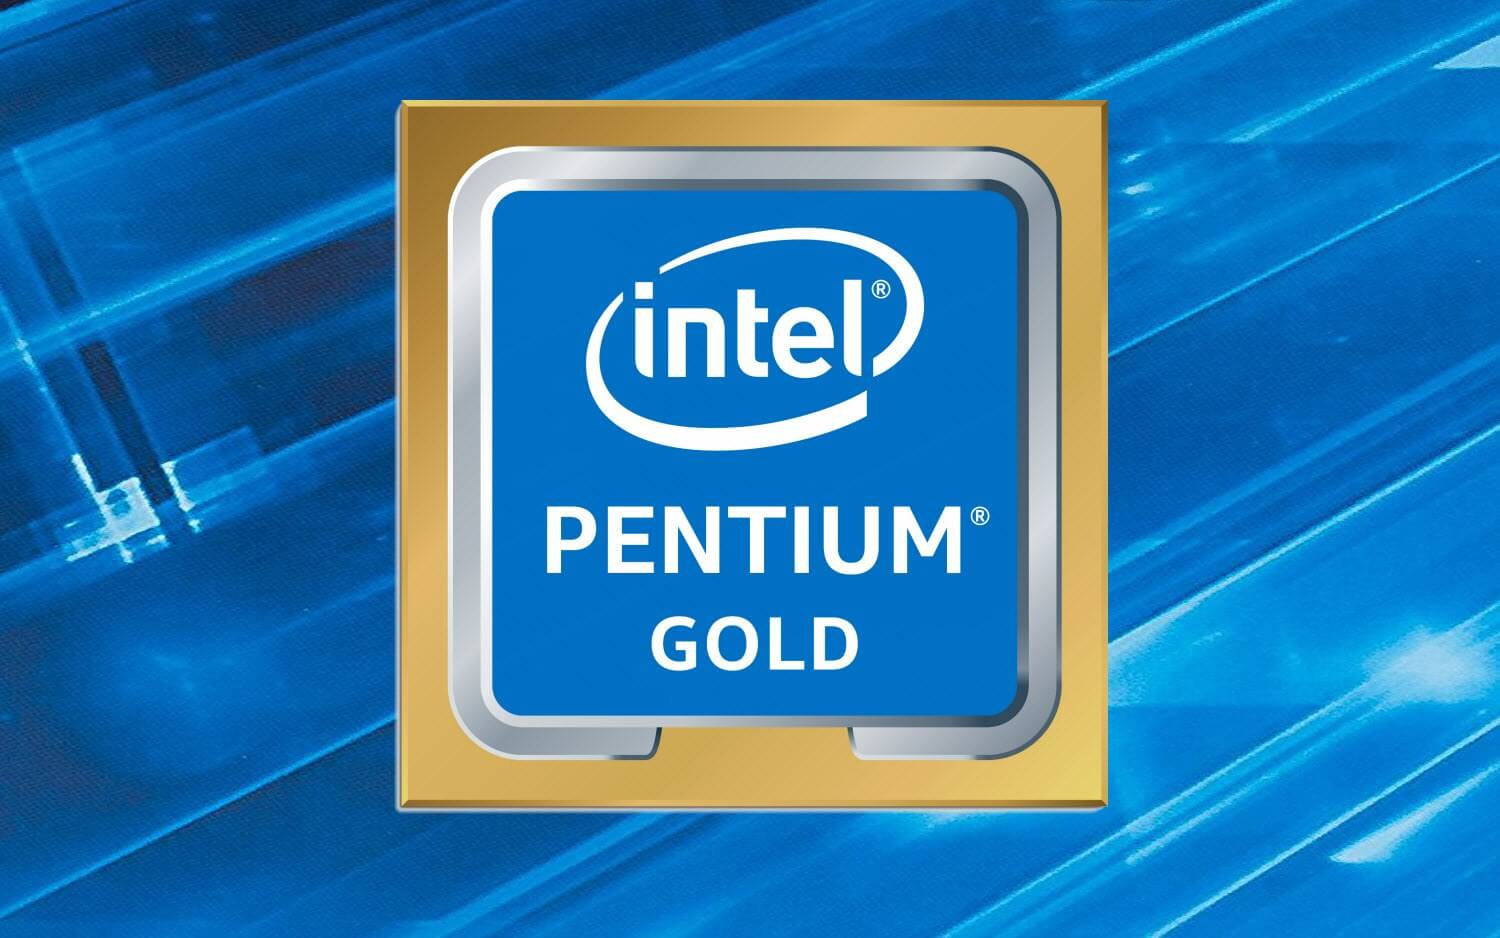 Intel takes on AMD's budget-focused Athlon Zen with the new Pentium G5620